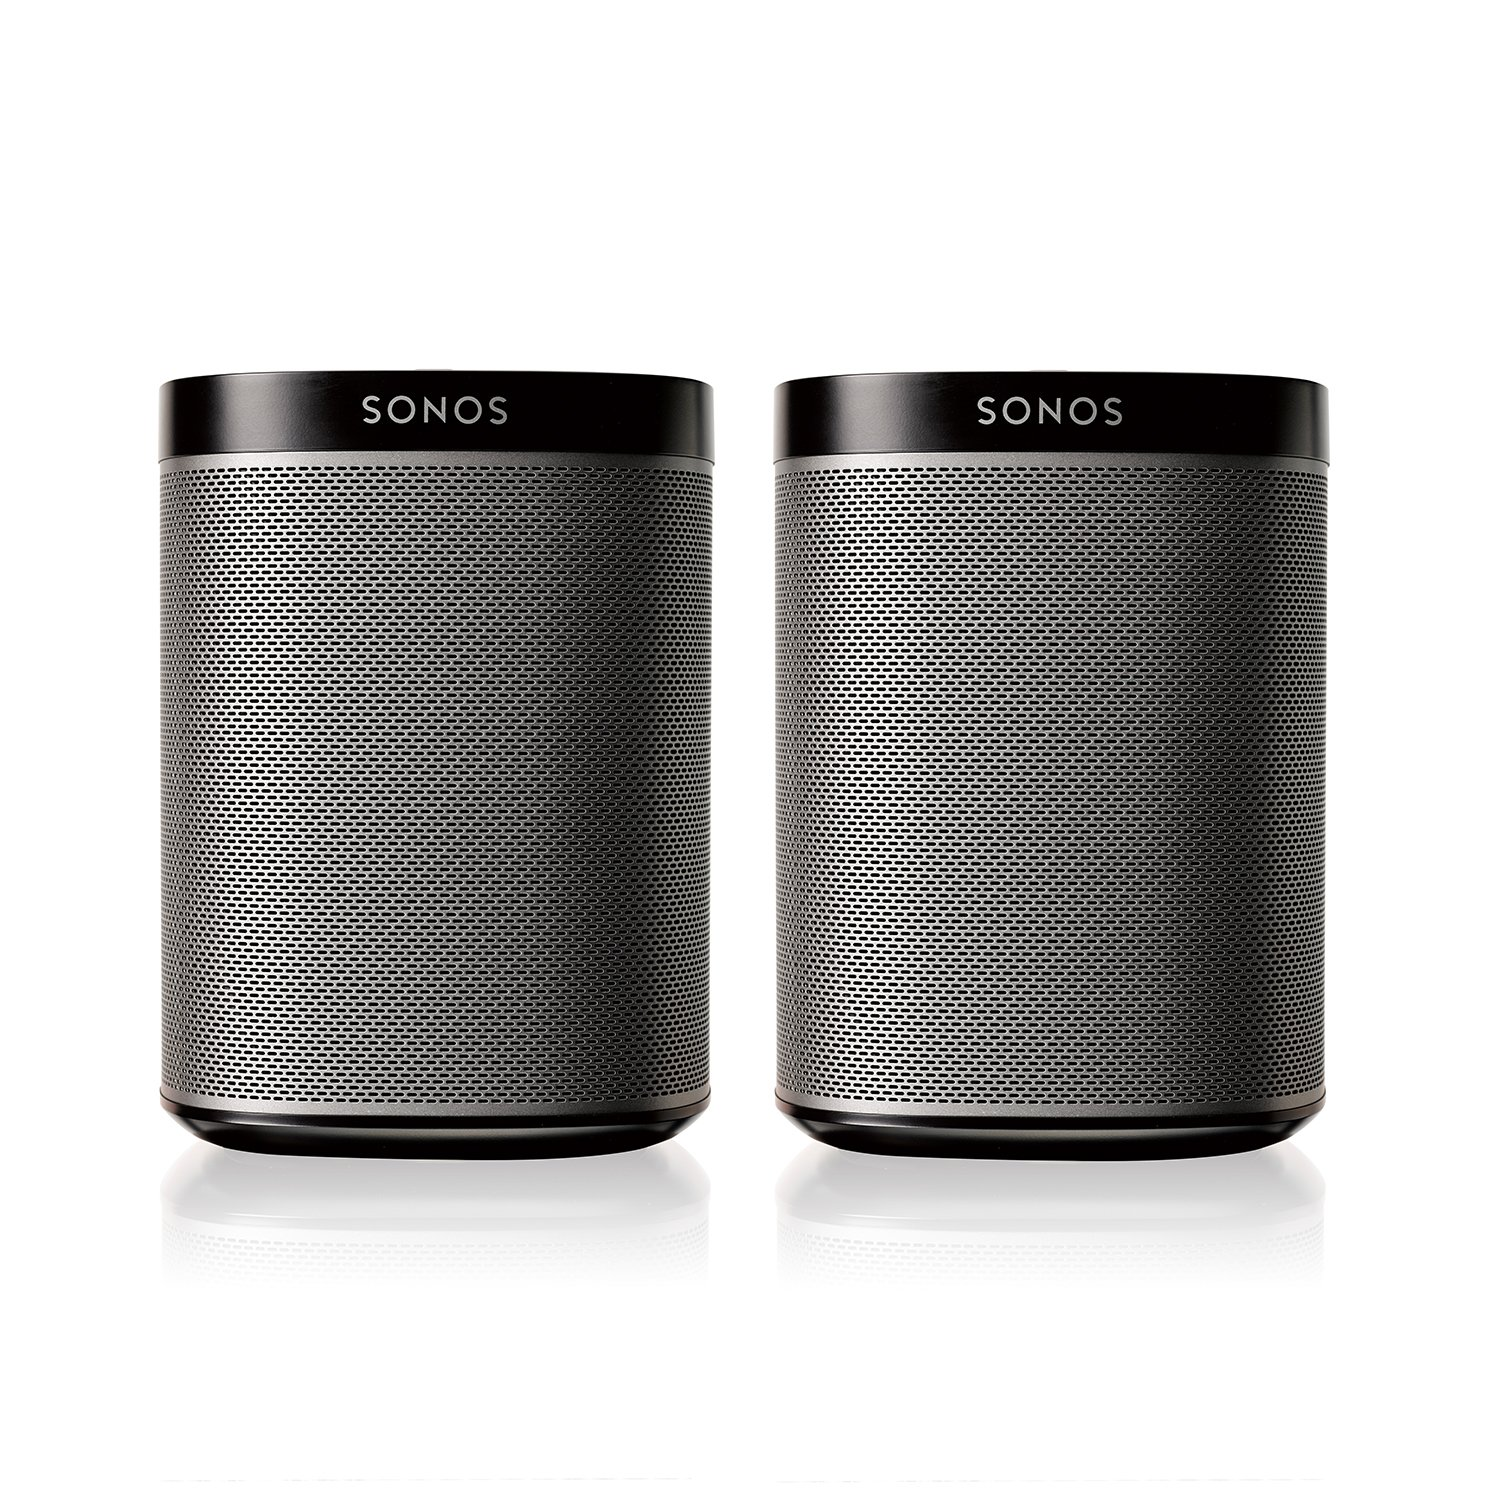 Sonos PLAY:1 2-Room Wireless Smart Speakersfor Streaming Music - Starter Set Bundle (Black) by Sonos